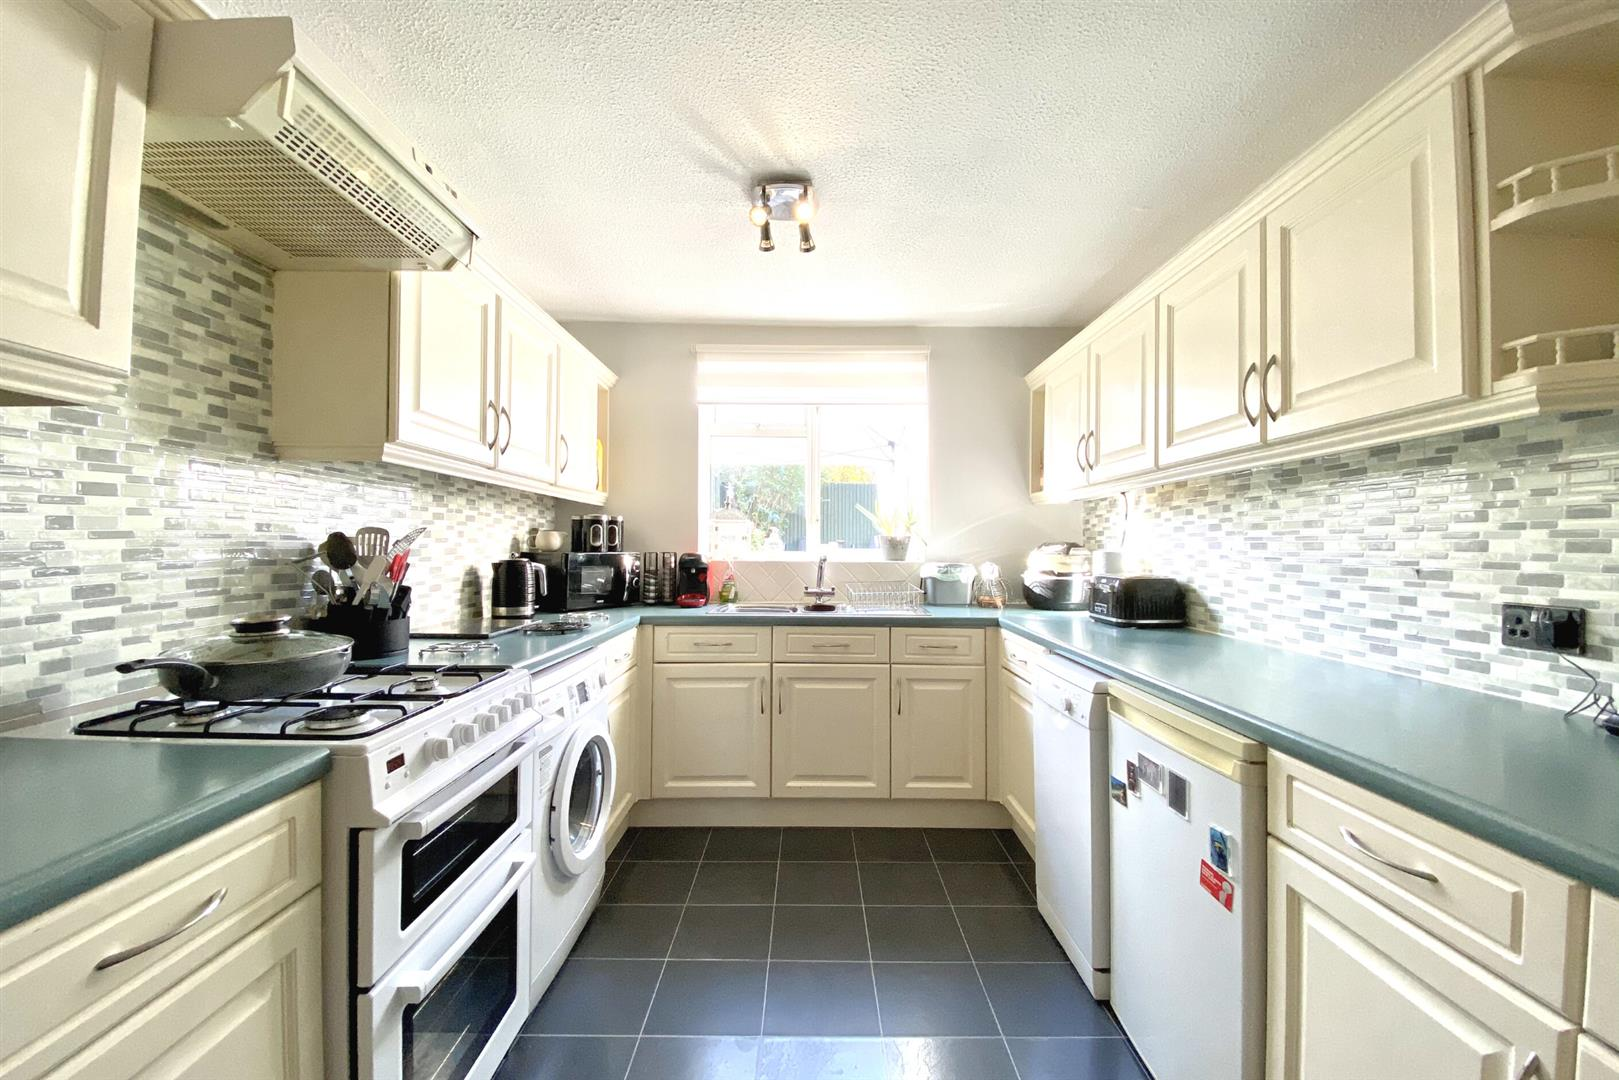 3 bed end of terrace for sale in Lower Earley 6